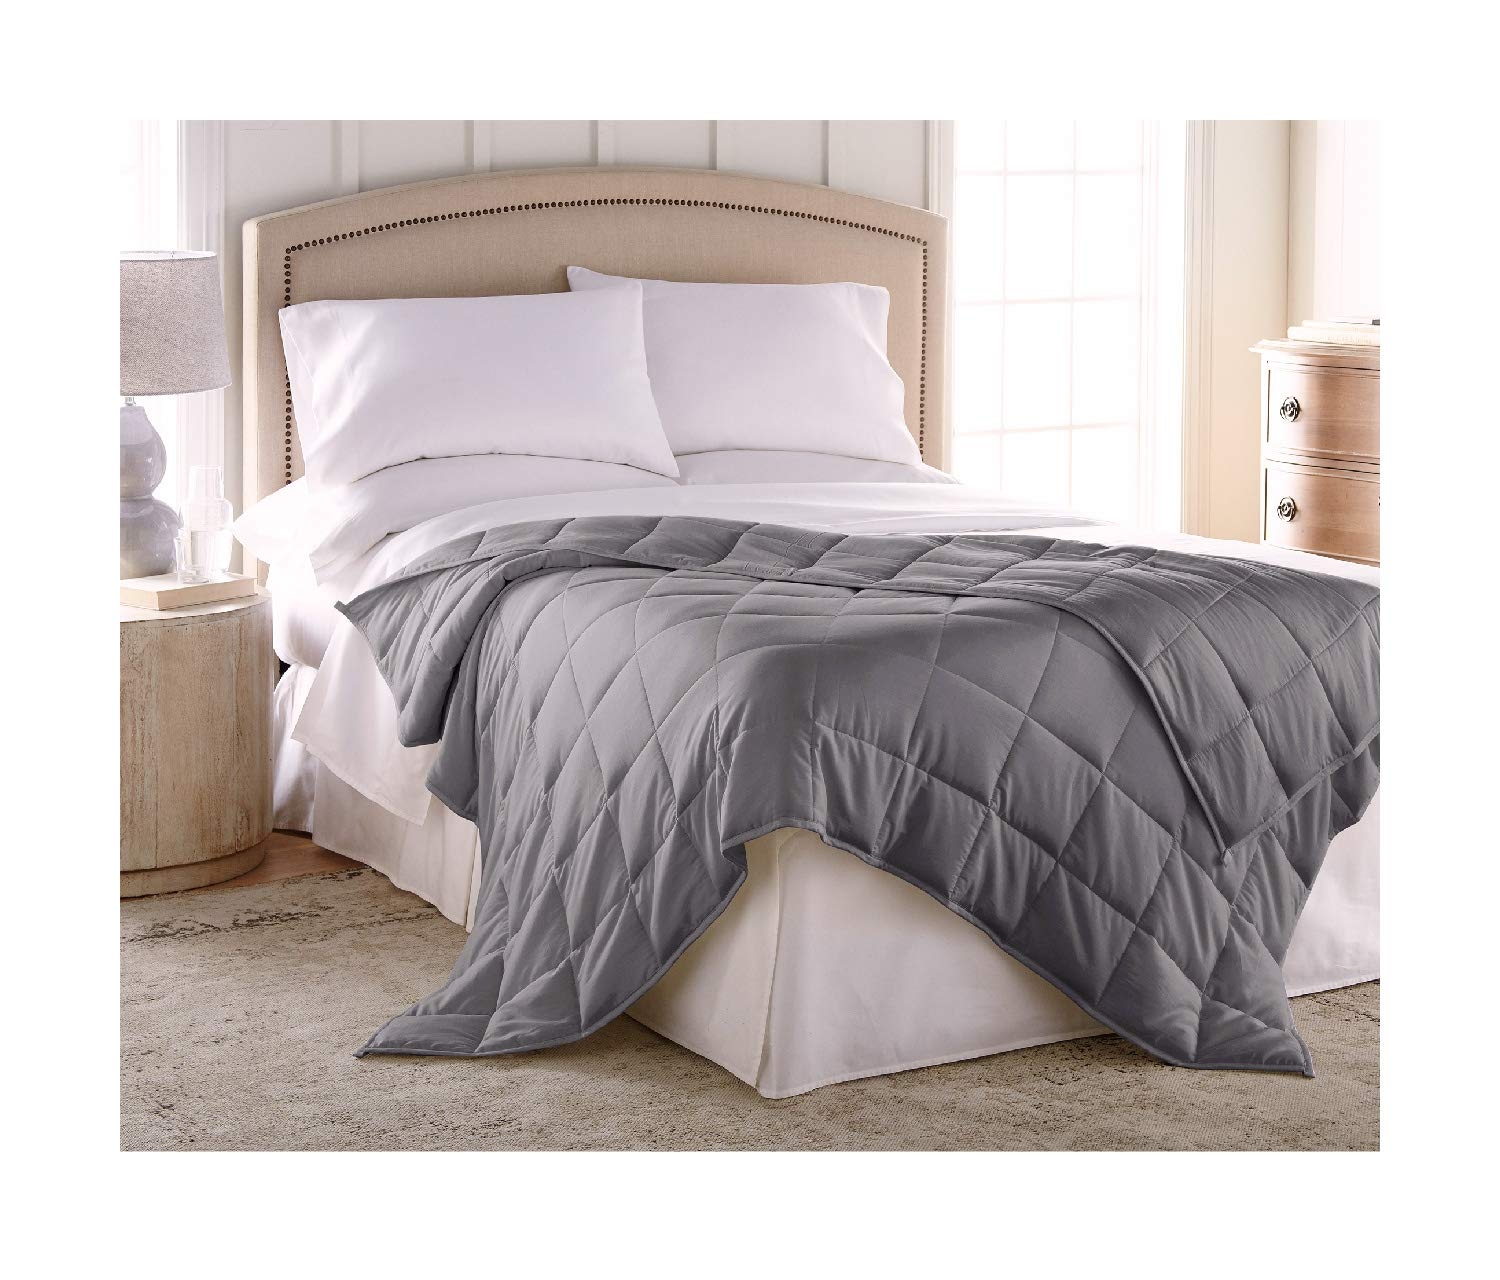 Harmonia Weighted Blanket King Size Adult 30 lbs :: Cotton Shell, Glass Bead Fill, 80'' x 86'', Dark Gray + Minky Duvet Cover, Weighted Blanket For Adults 30 lbs